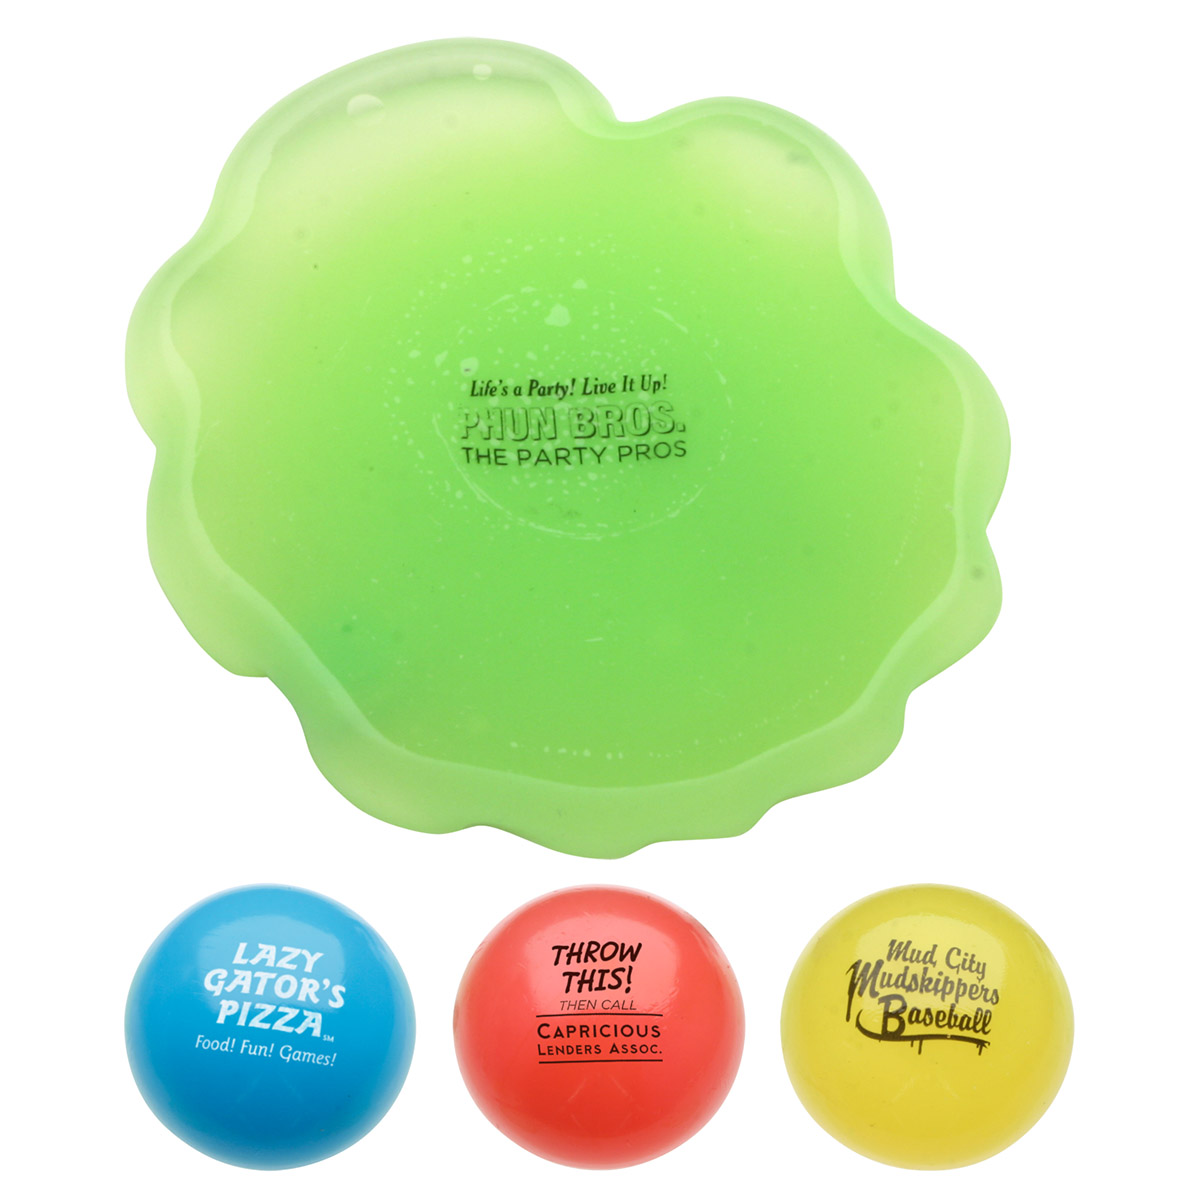 Toss N' Splat Amoeba Ball, LGB-AB09 - 1 Colour Imprint